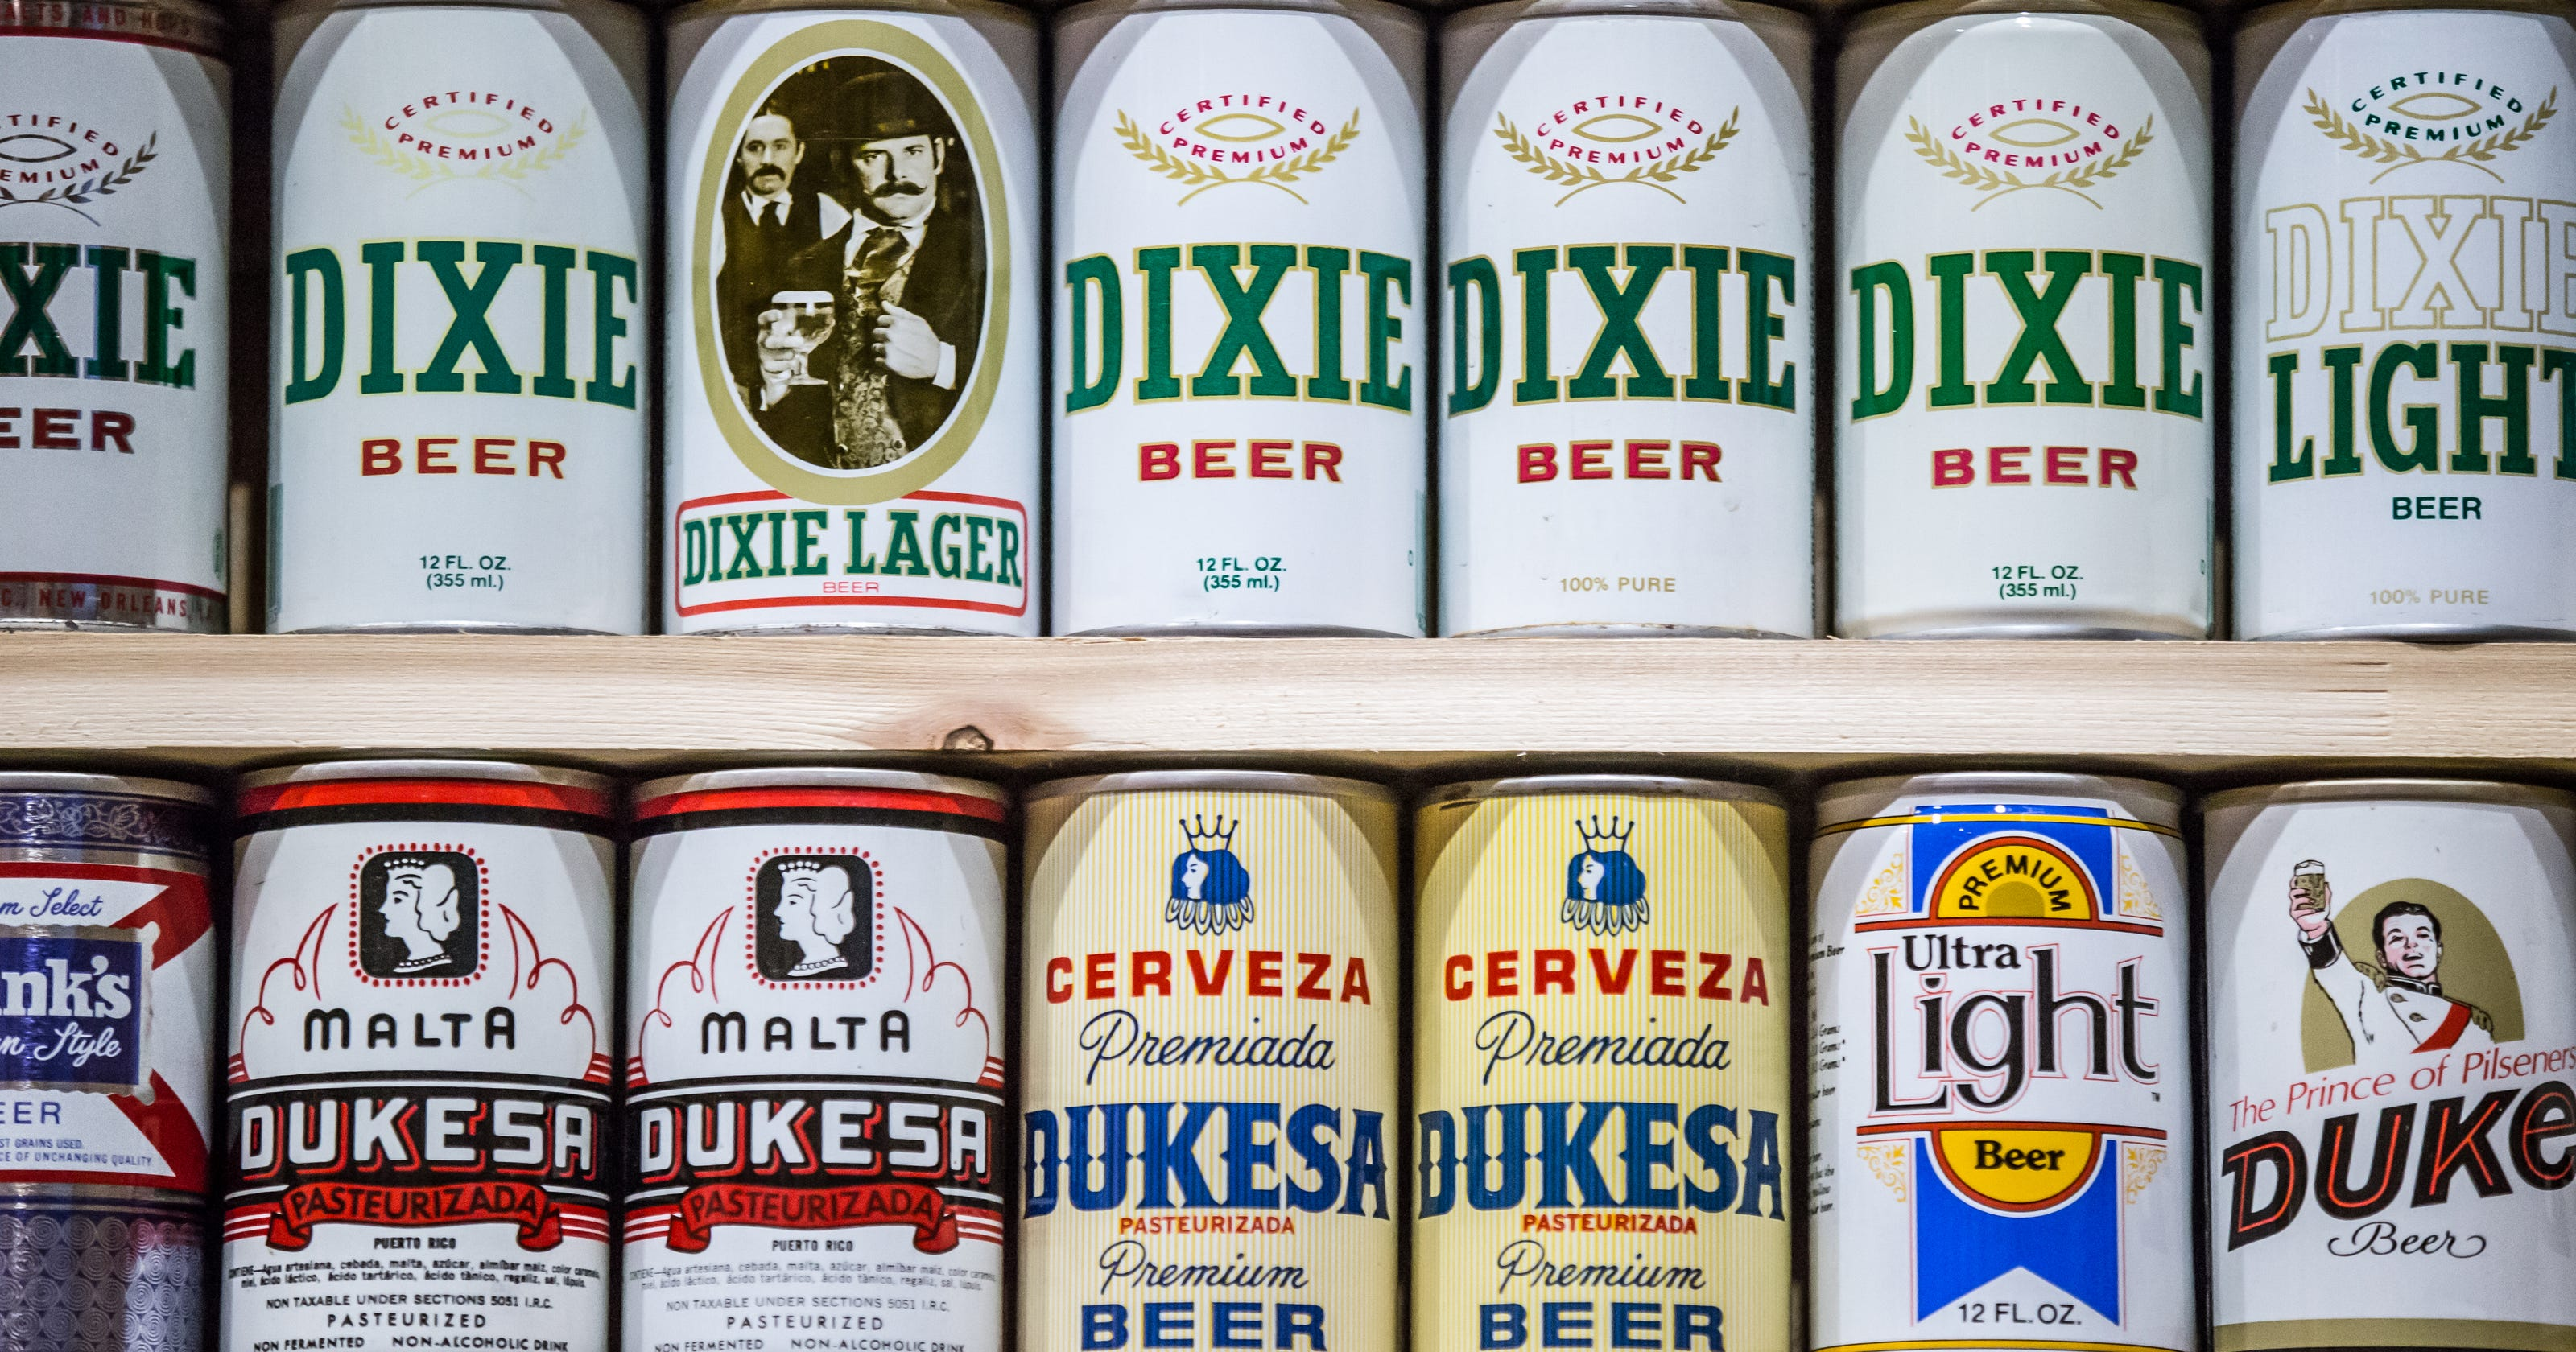 Dixie Beer company says it needs help choosing a new name, and you can send in suggestions